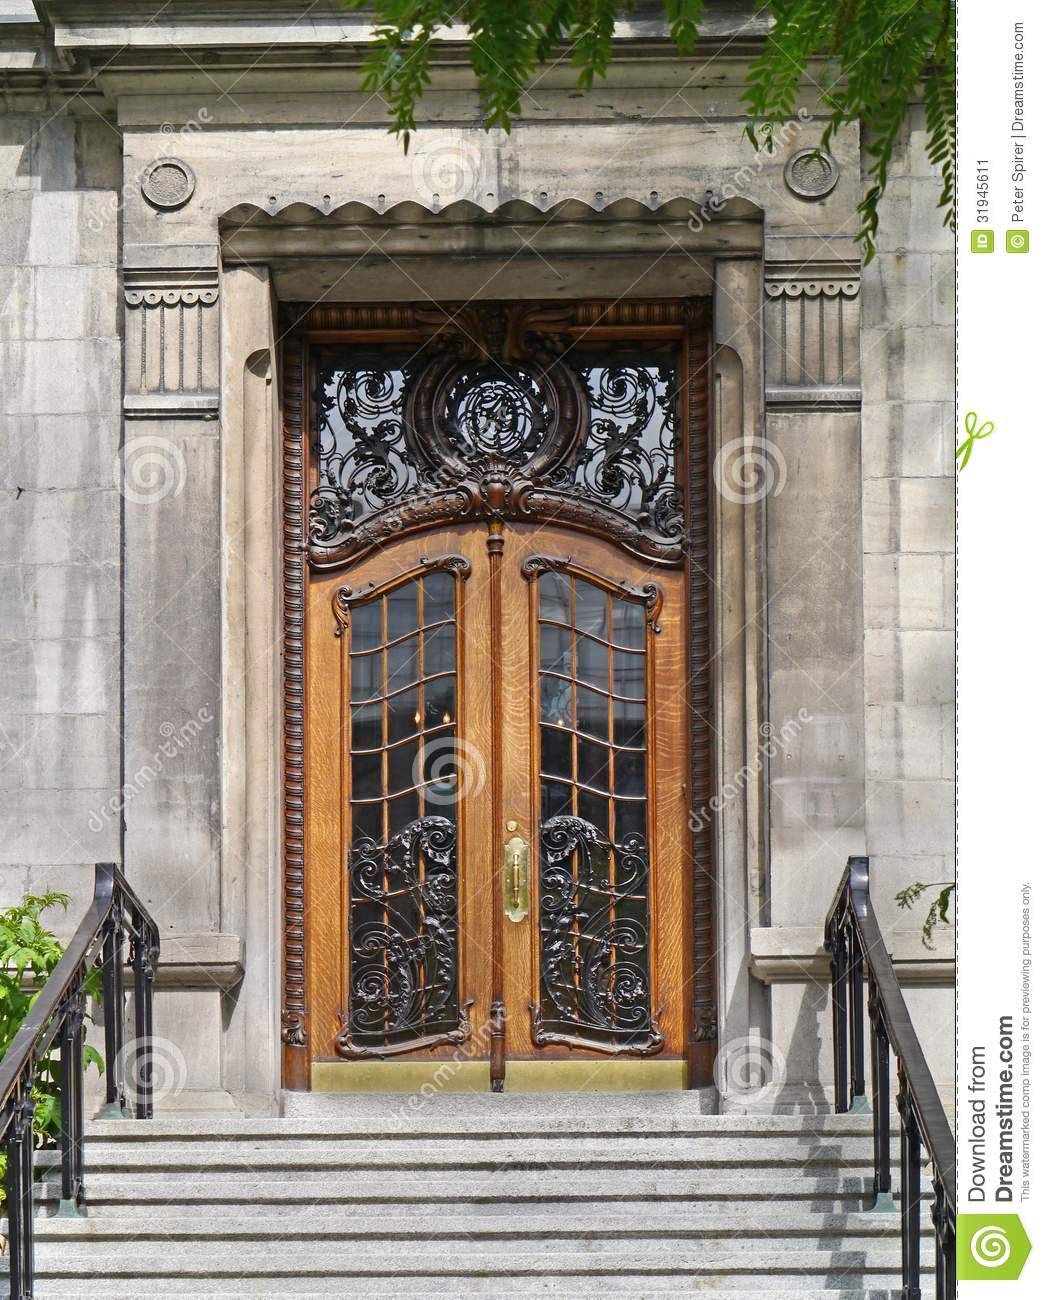 1300 #966335 Elegant Front Door Of An Old Apartment Building Or Hotel. picture/photo Commercial Building Entry Doors 45391045